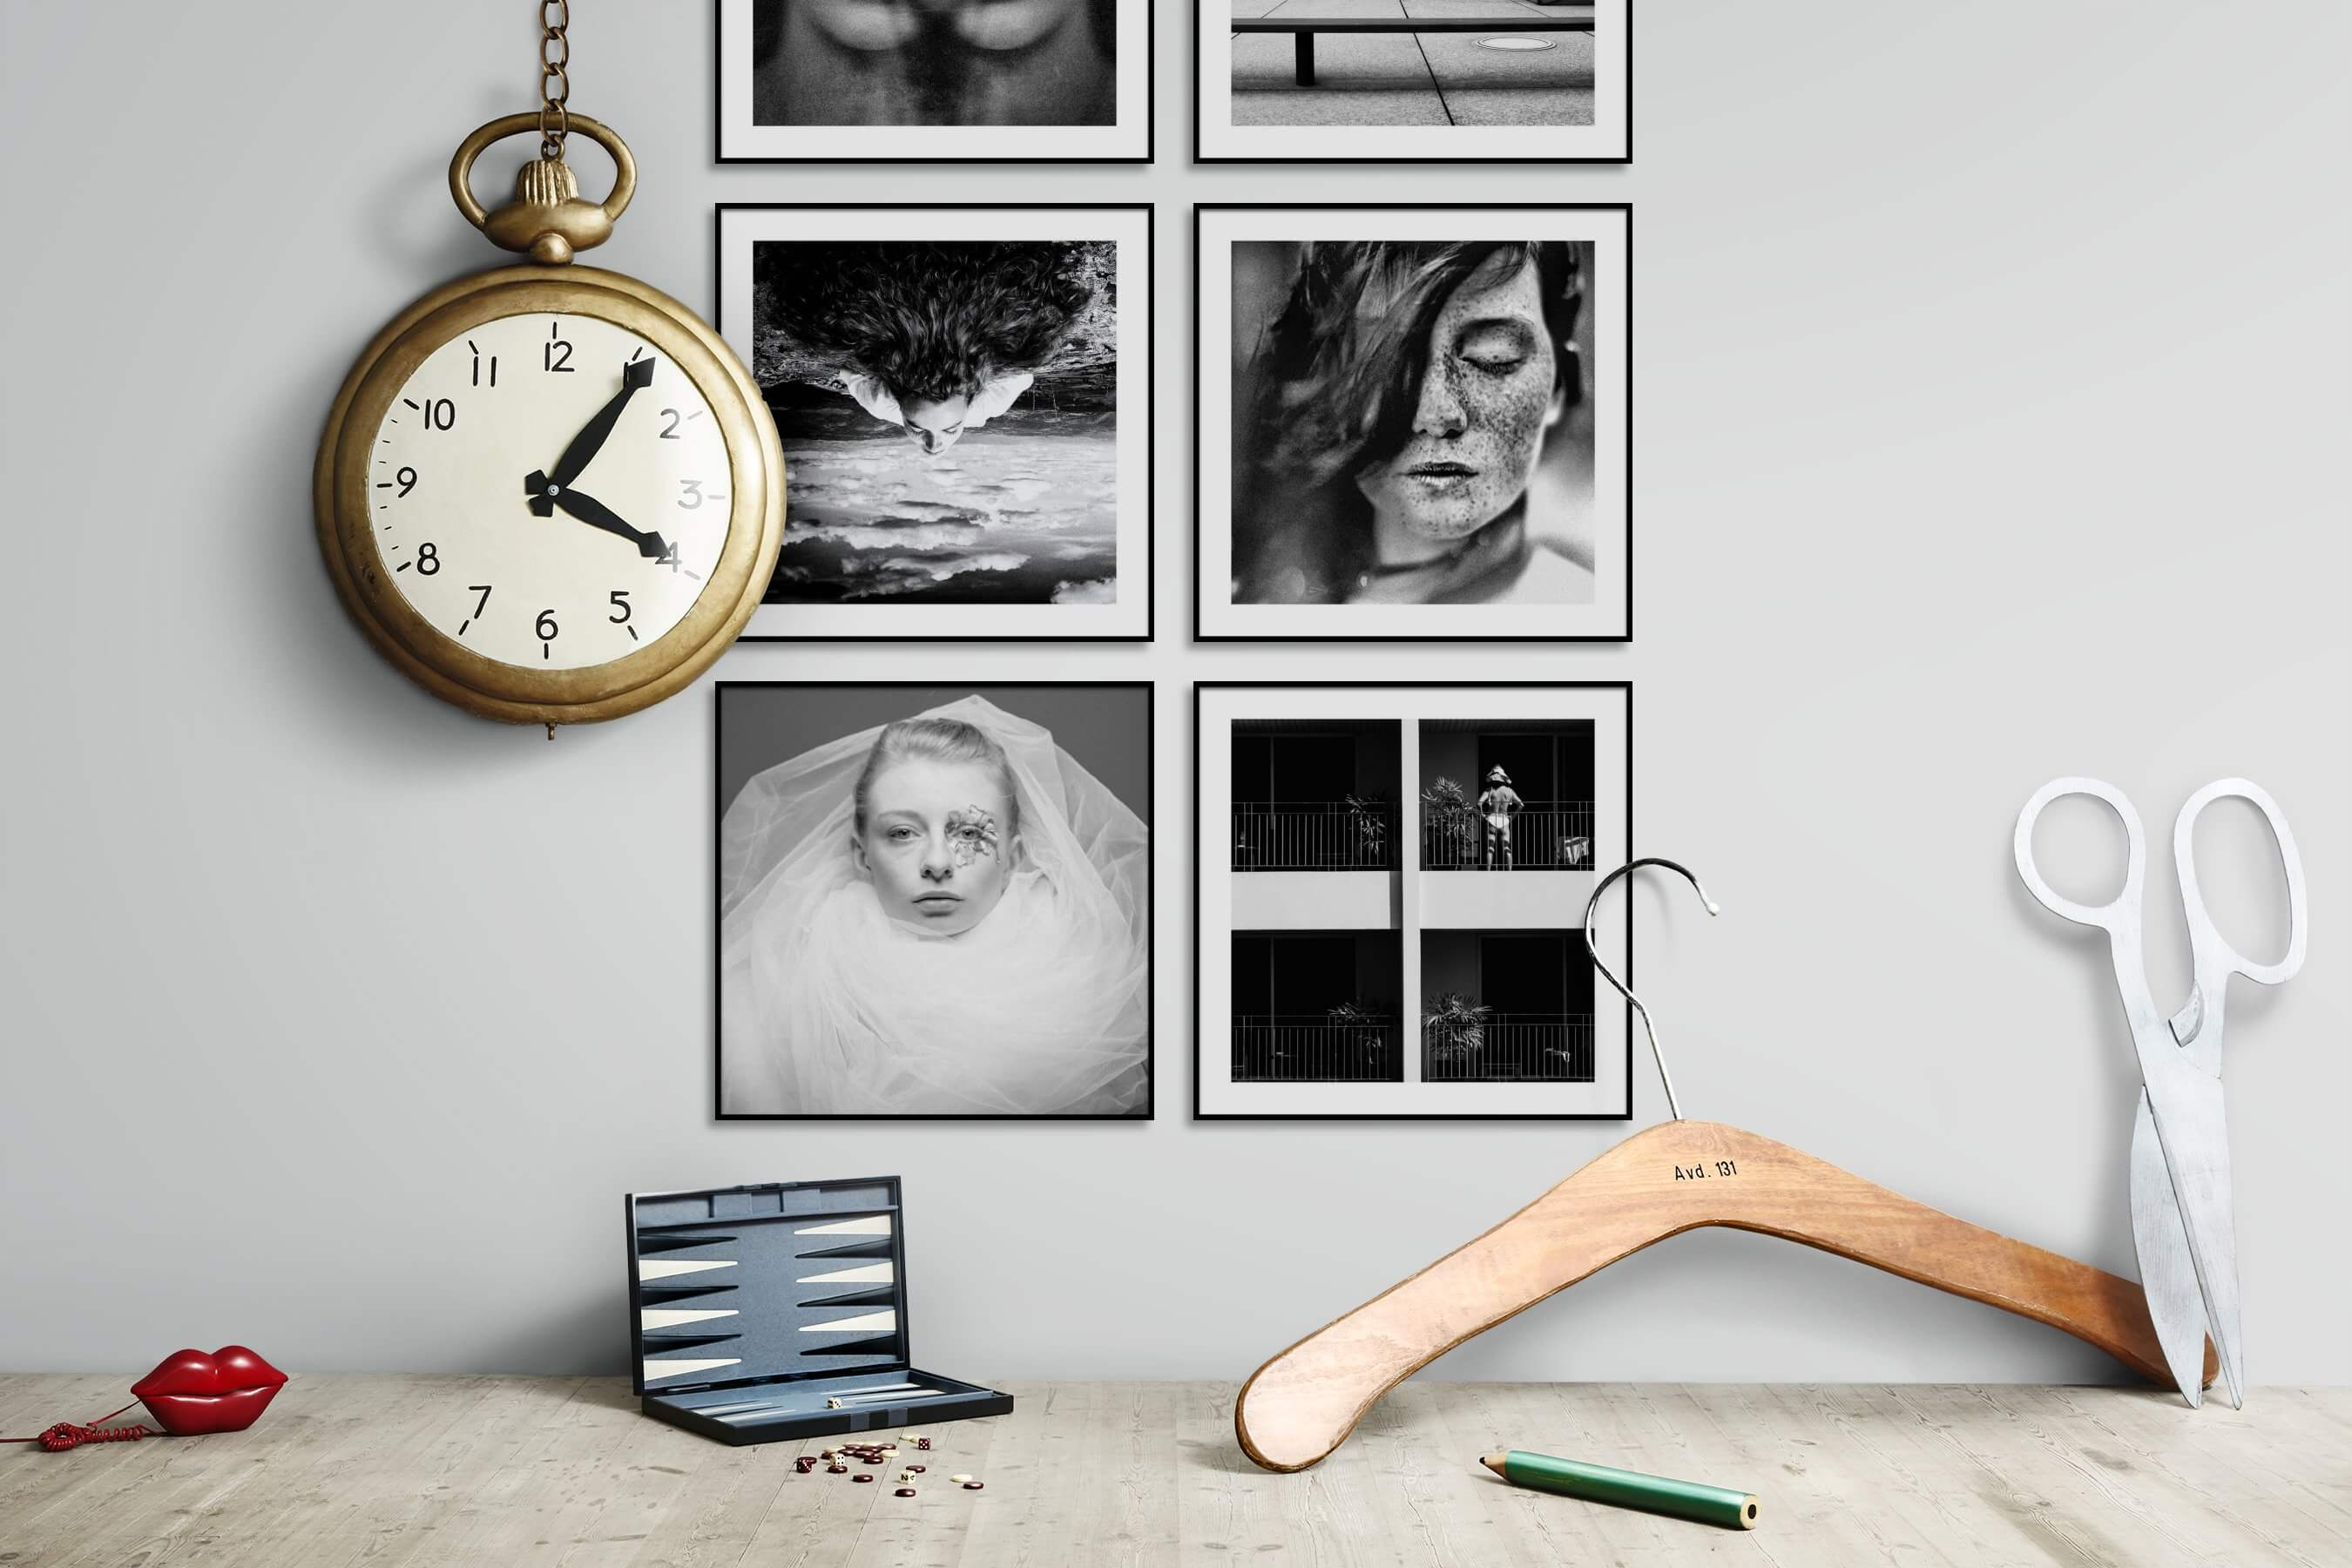 Gallery wall idea with six framed pictures arranged on a wall depicting Artsy, Black & White, For the Minimalist, Fashion & Beauty, and City Life